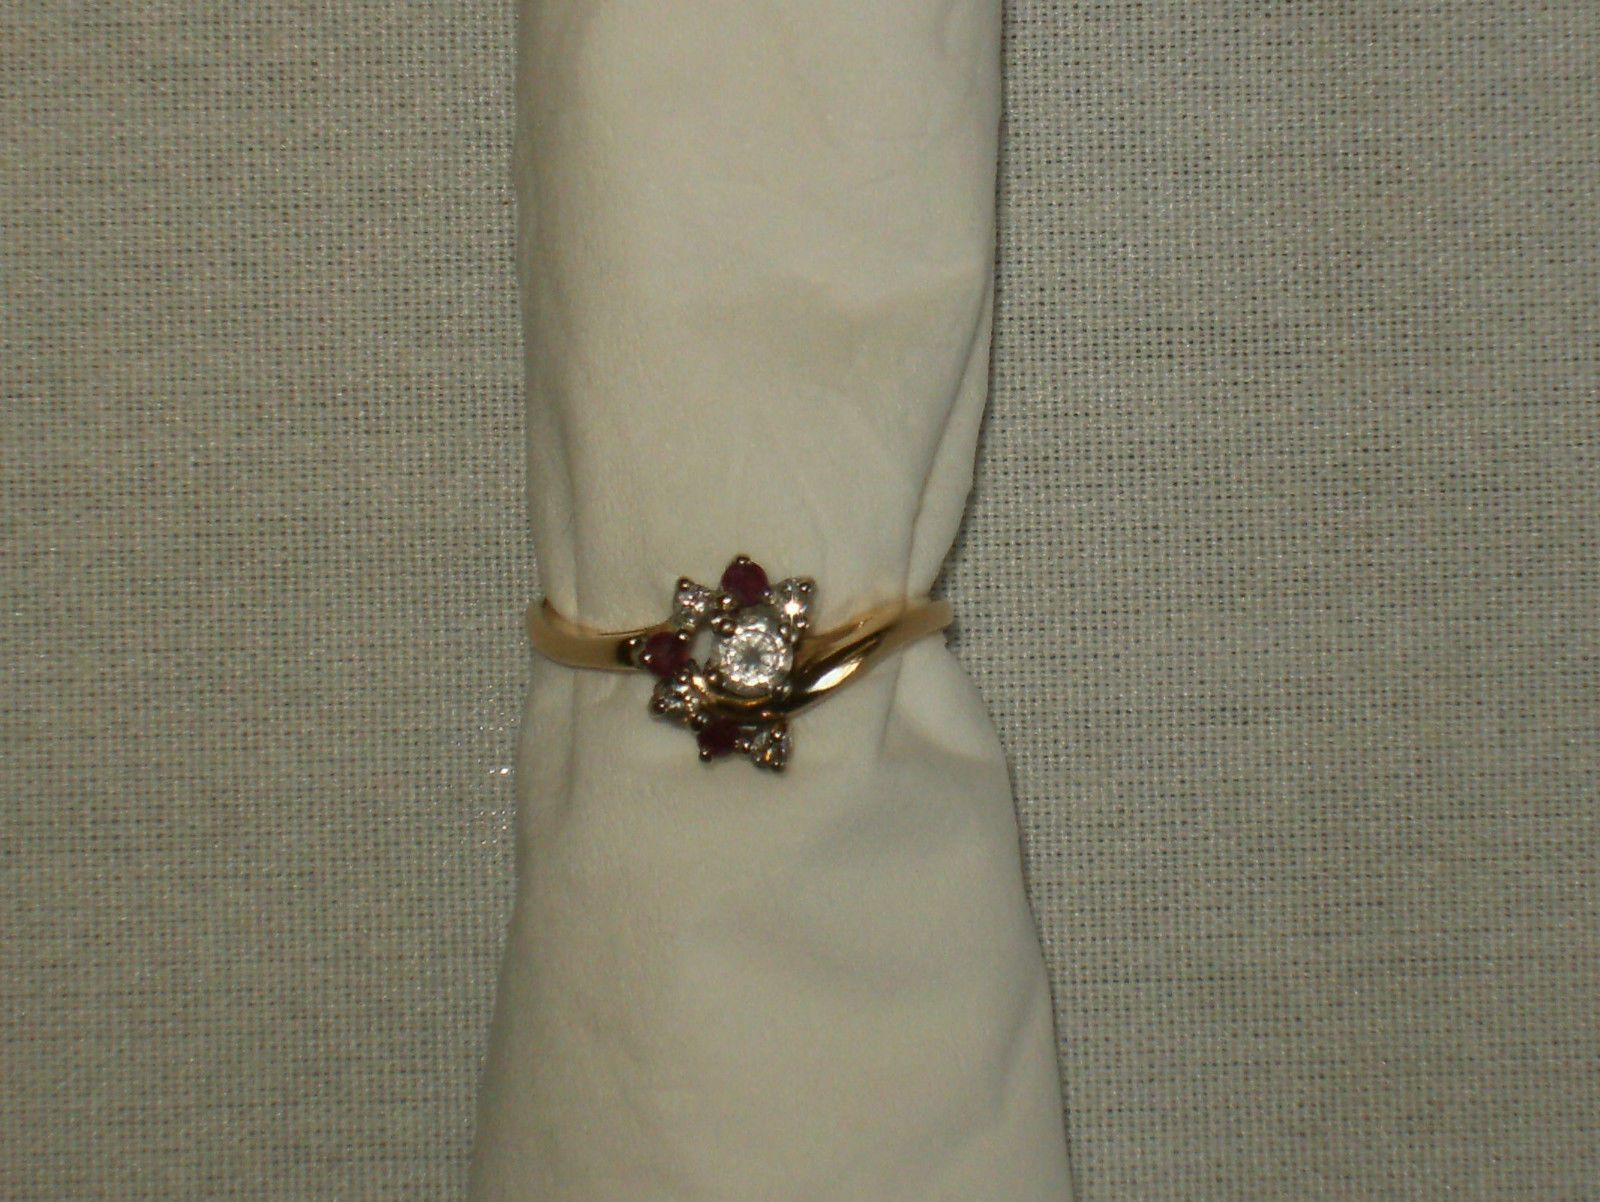 #jewelry Vintage 14K Yellow Gold Ring with Rubies and Diamonds please retweet